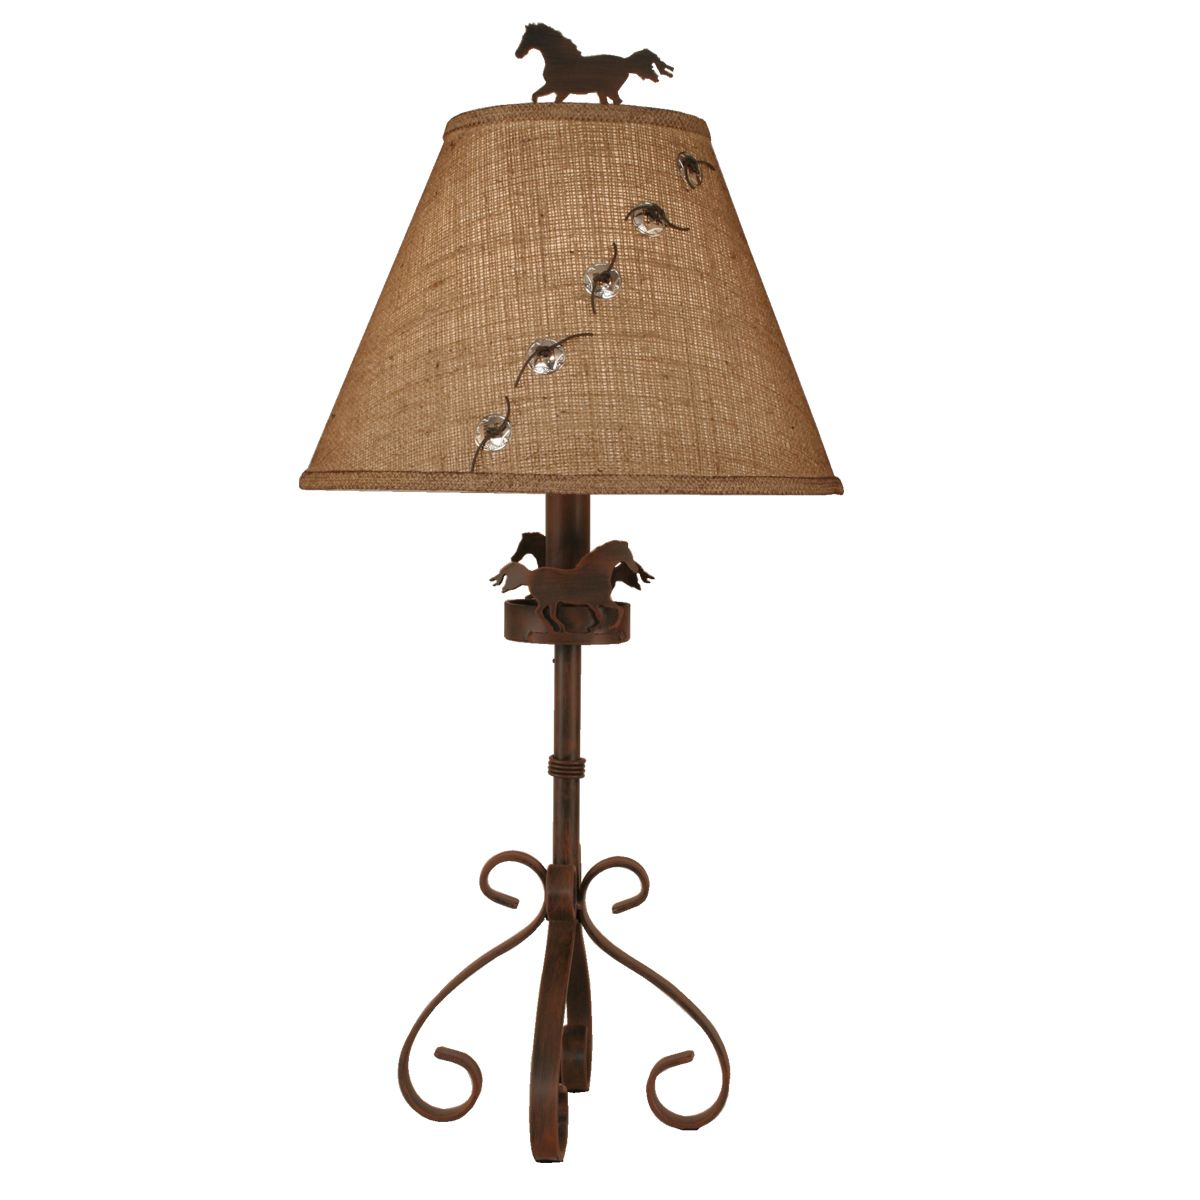 Rusted Steel Curved Leg Table Lamp with Horse Accent